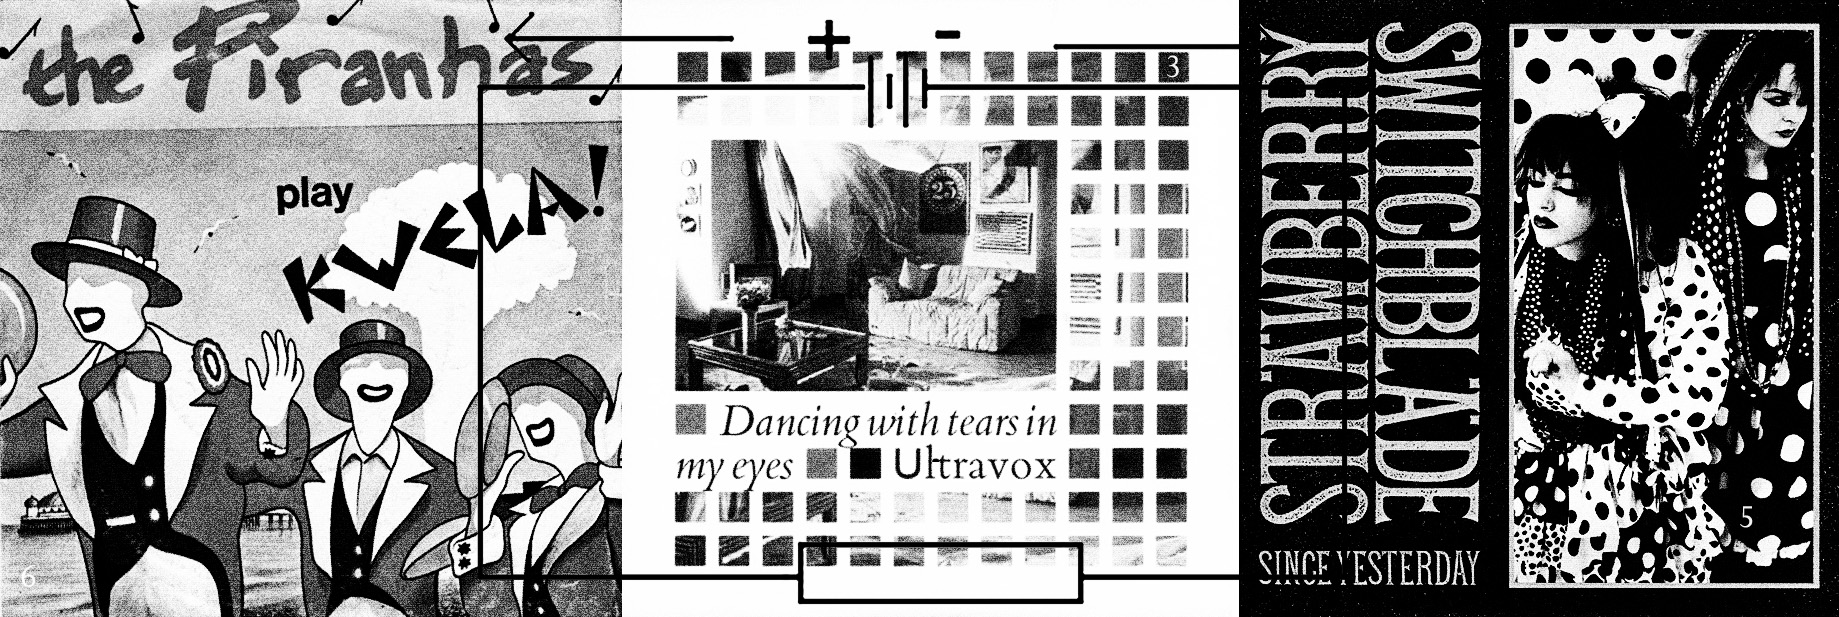 The Pirahnas-Tom Hark-Dancing With Tears In My Eyes-Ultravox-Strawberry Switchblade-Since Yesterday-Trailblazers-Sky Arts-A Year In The Country